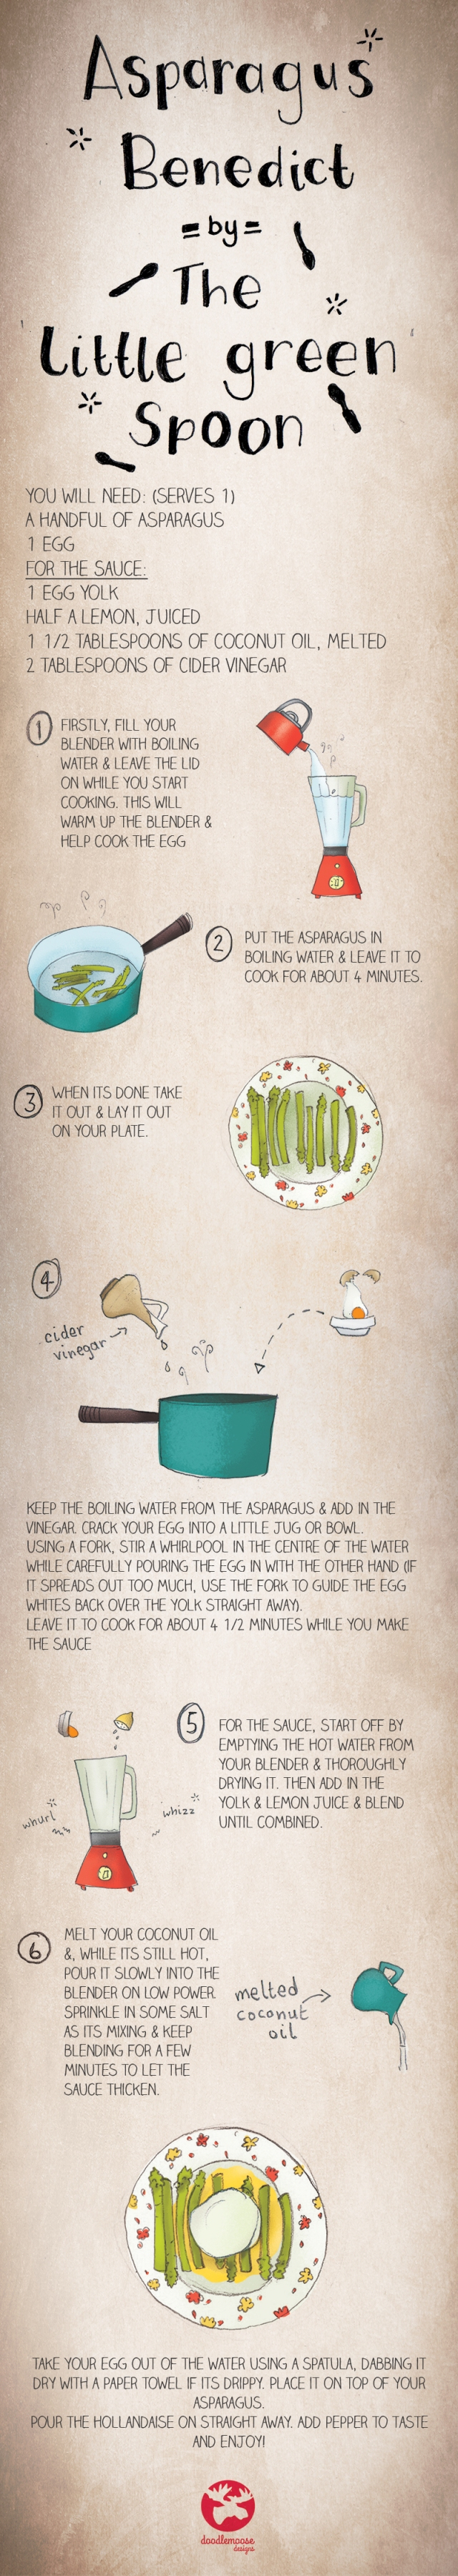 Asparagus Benedict Illustrated Recipe